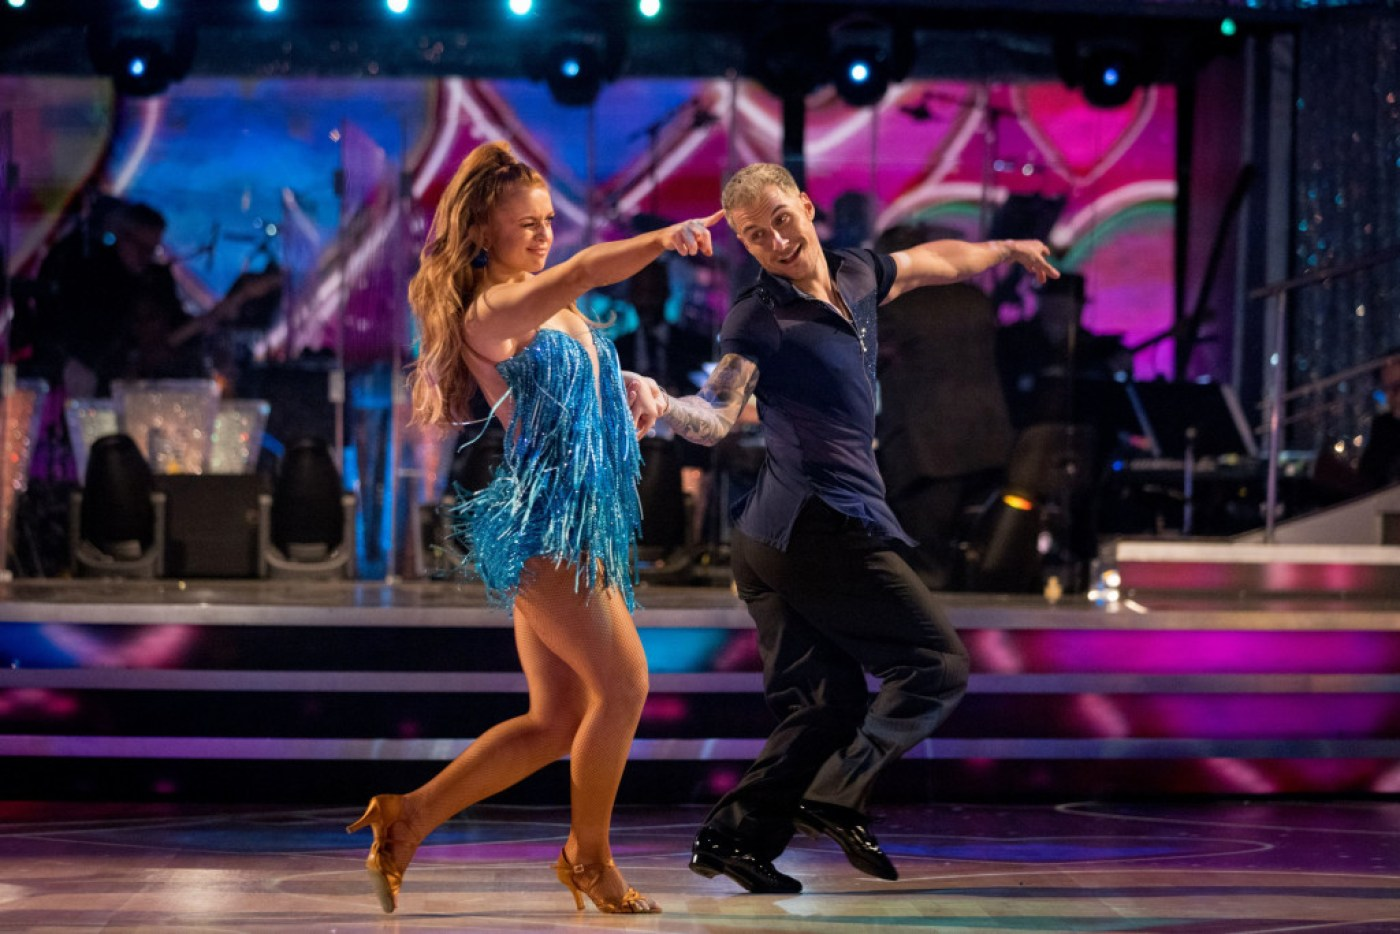 For use in UK, Ireland or Benelux countries only Undated BBC handout photo of Maisie Smith and Gorka Marquez during the launch show for the BBC1 dancing contest, Strictly Come Dancing. PA Photo. Issue date: Saturday October 17, 2020. See PA story SHOWBIZ Strictly. Photo credit should read: BBC/PA Wire NOTE TO EDITORS: Not for use more than 21 days after issue. You may use this picture without charge only for the purpose of publicising or reporting on current BBC programming, personnel or other BBC output or activity within 21 days of issue. Any use after that time MUST be cleared through BBC Picture Publicity. Please credit the image to the BBC and any named photographer or independent programme maker, as described in the caption.